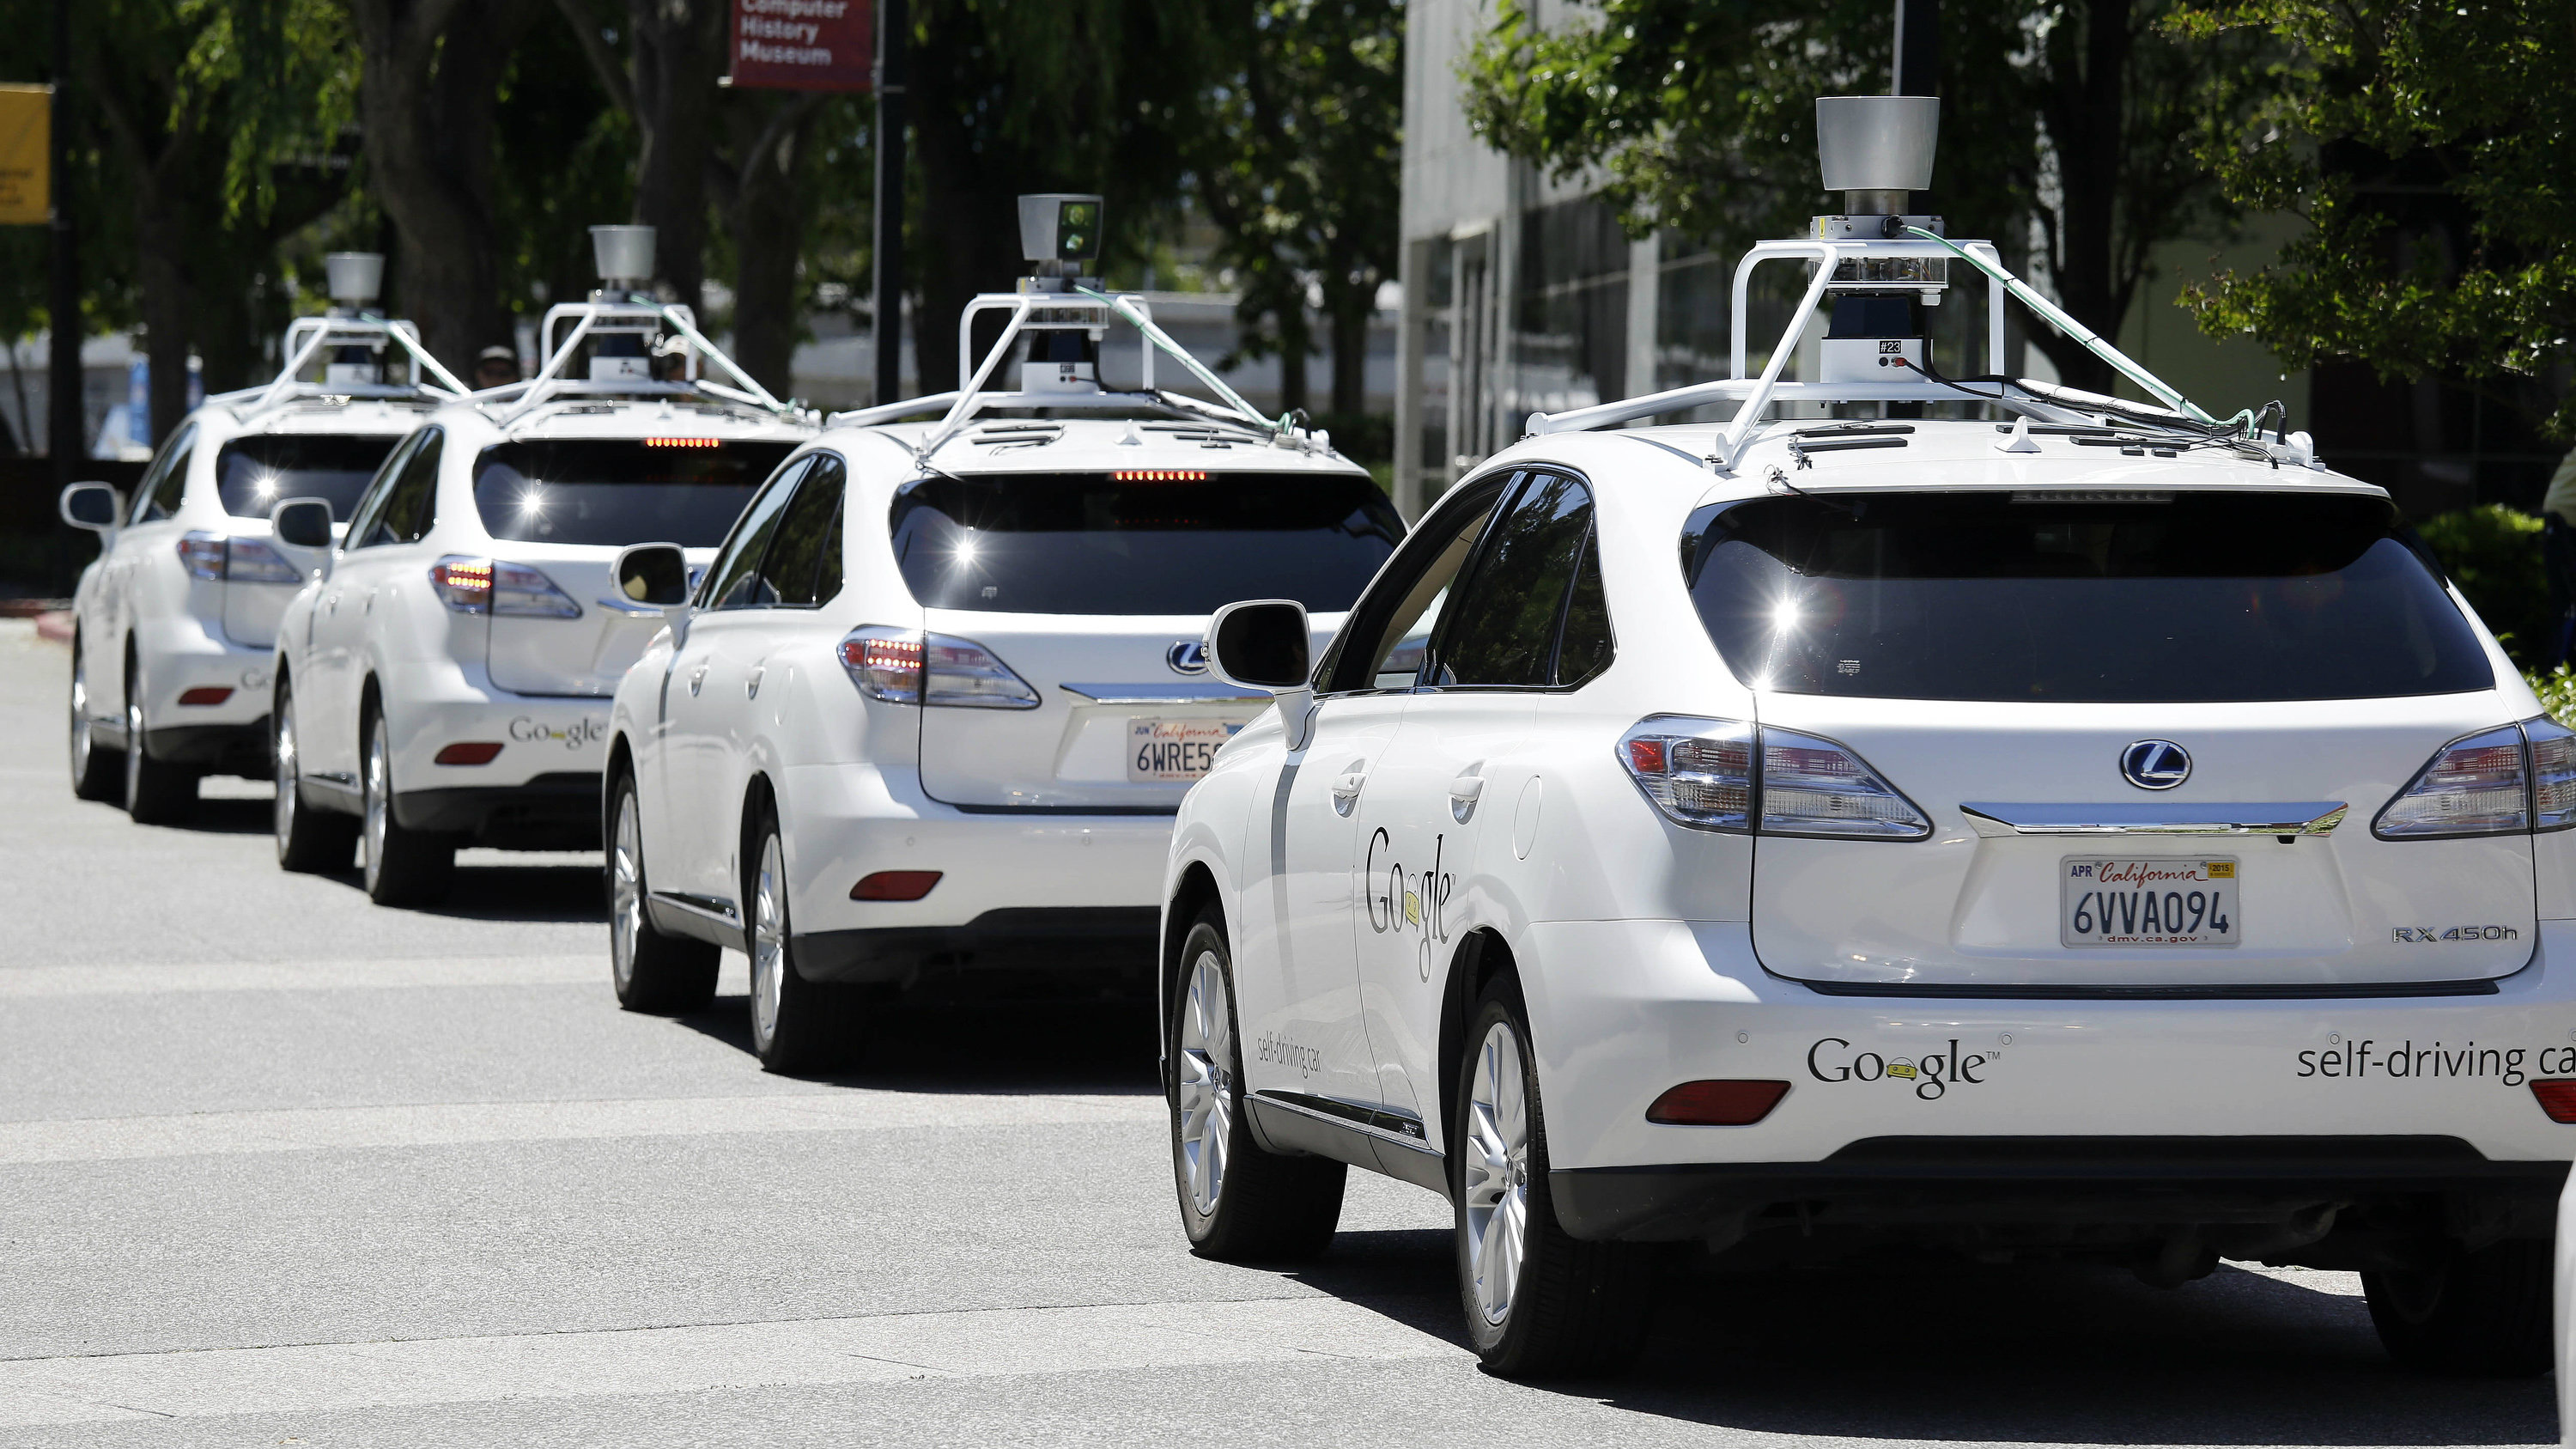 """FILE - This May 13, 2014, file photo shows a row of Google self-driving Lexus cars at a Google event outside the Computer History Museum in Mountain View, Calif. California regulators release safety reports filed by 11 companies that have been testing self-driving car prototypes on public roads on Wednesday, Feb. 1, 2017. The papers report the number of times in 2016 that human backup drivers took control from the cars' self-driving software, though companies argue such """"disengagements"""" don't always reflect something going wrong. (AP Photo/Eric Risberg, File)"""